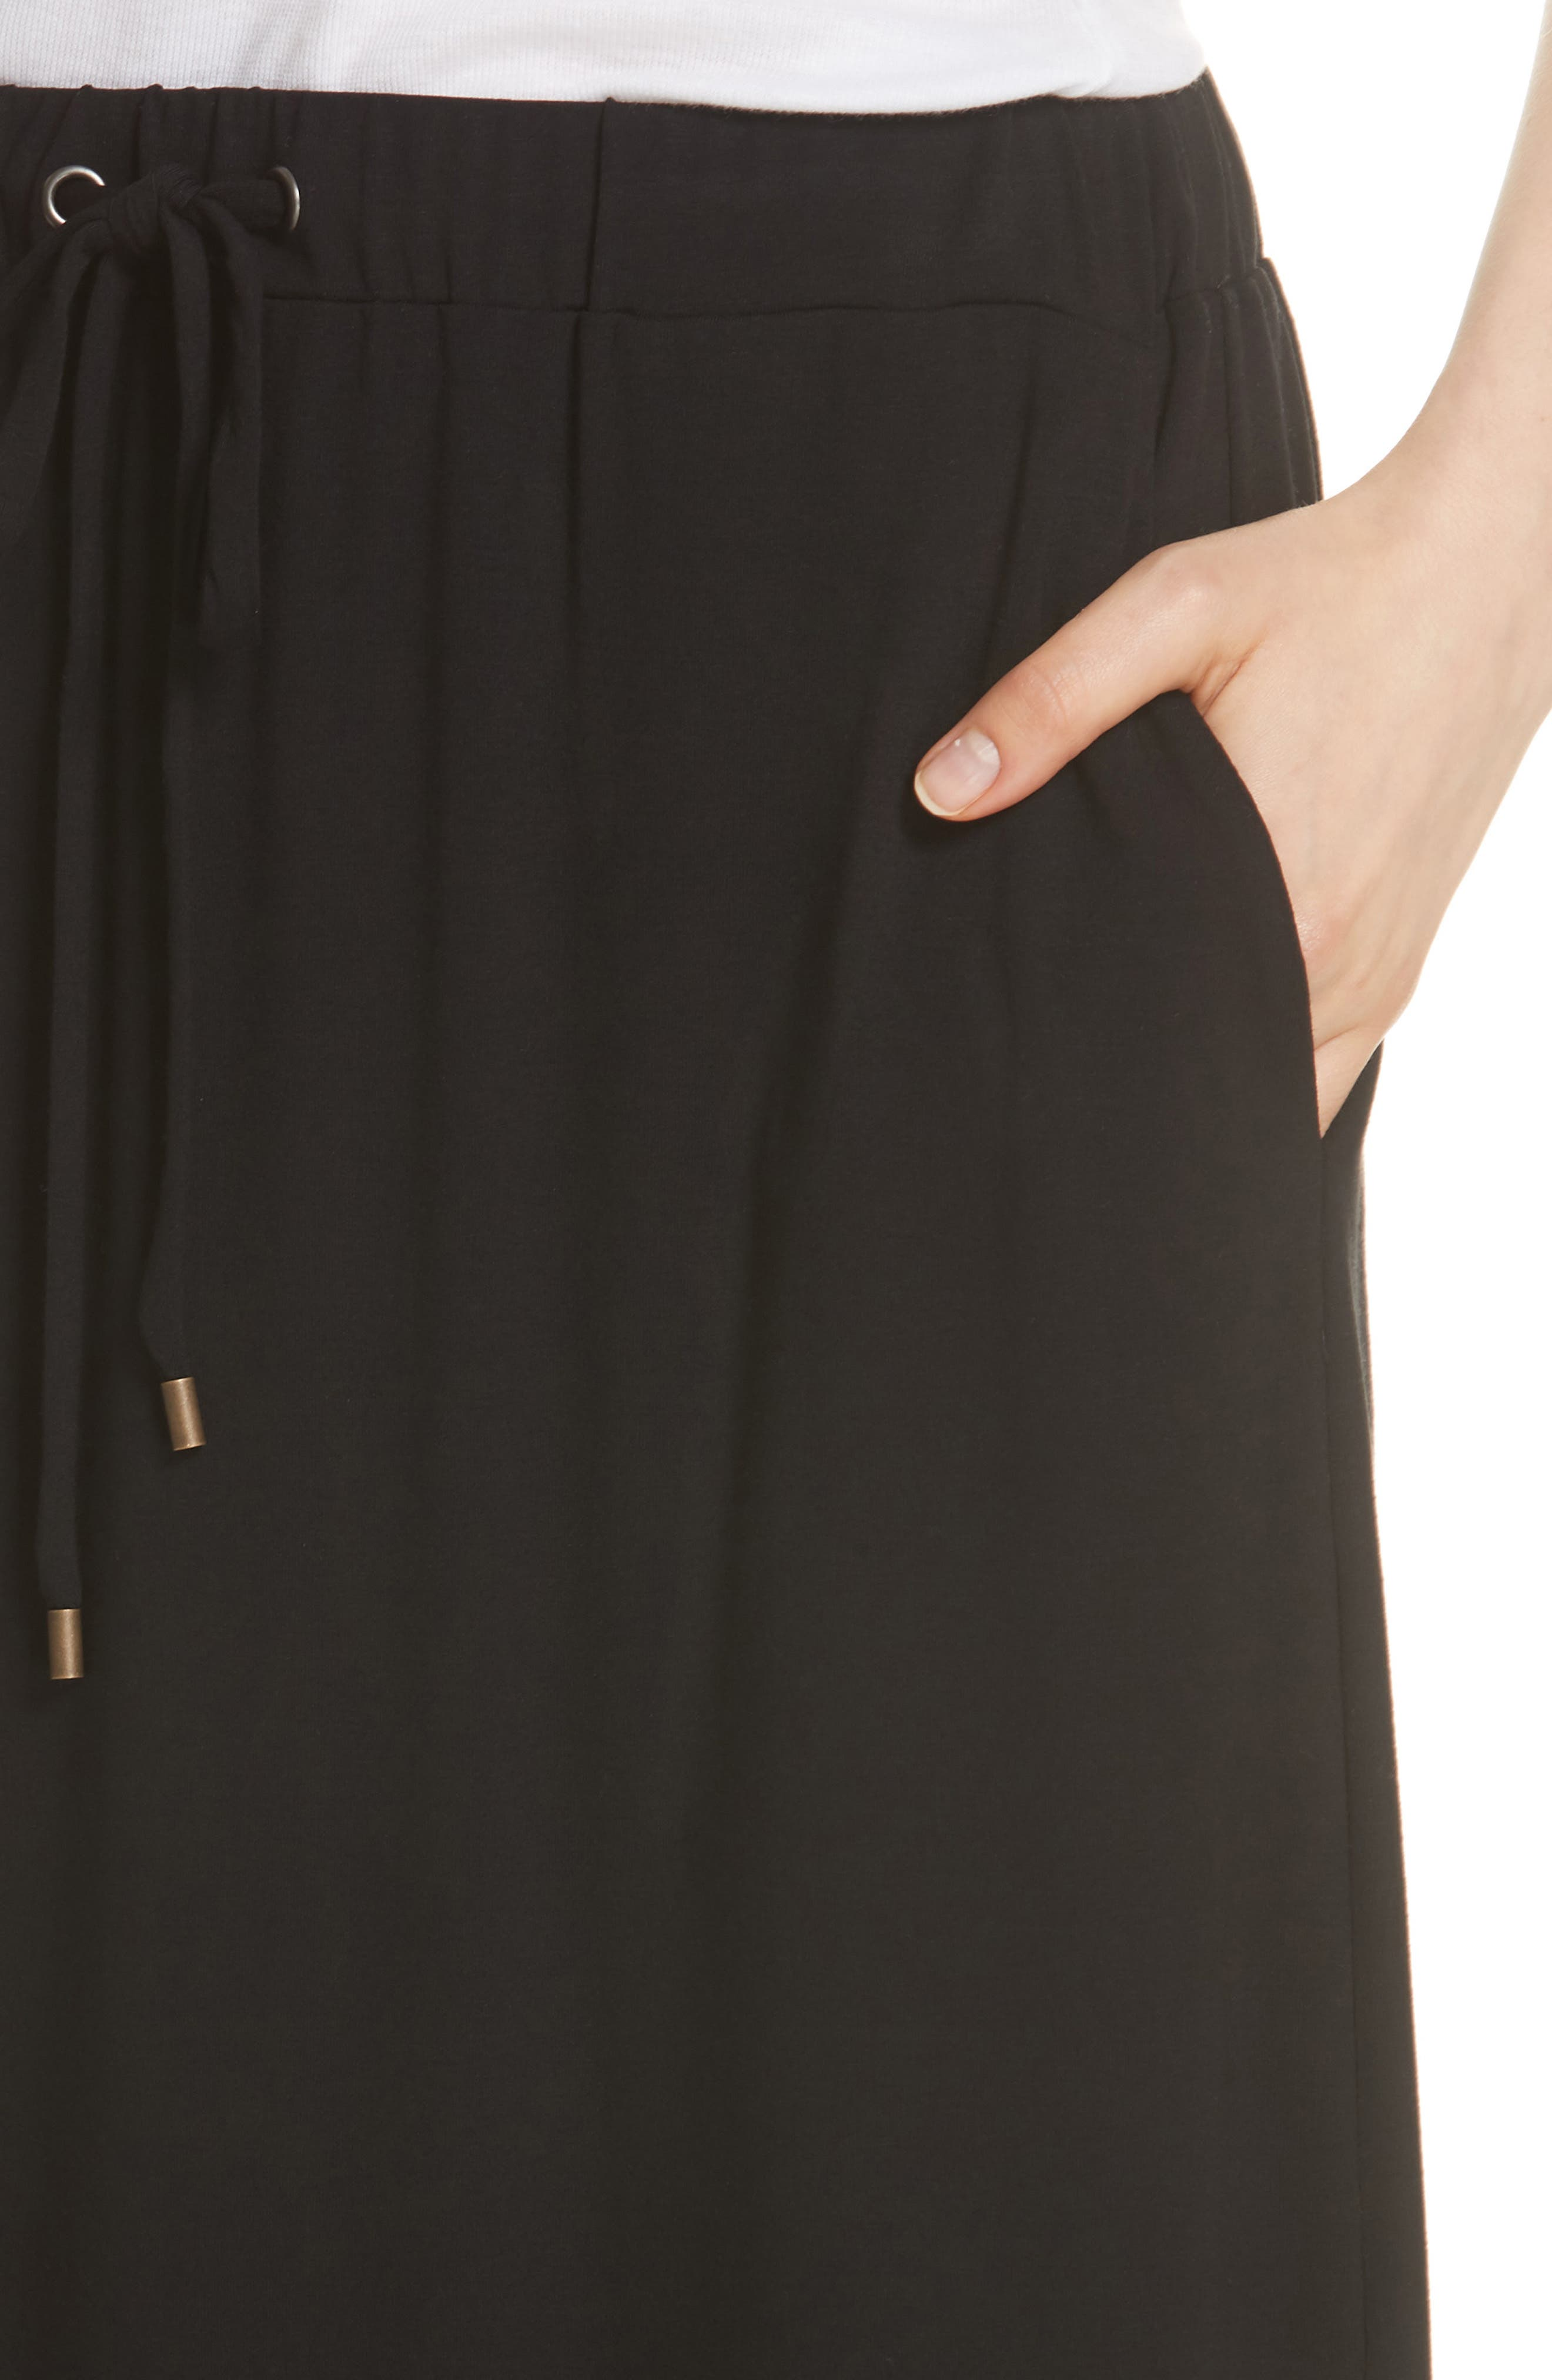 Drawstring Skirt,                             Alternate thumbnail 4, color,                             Black